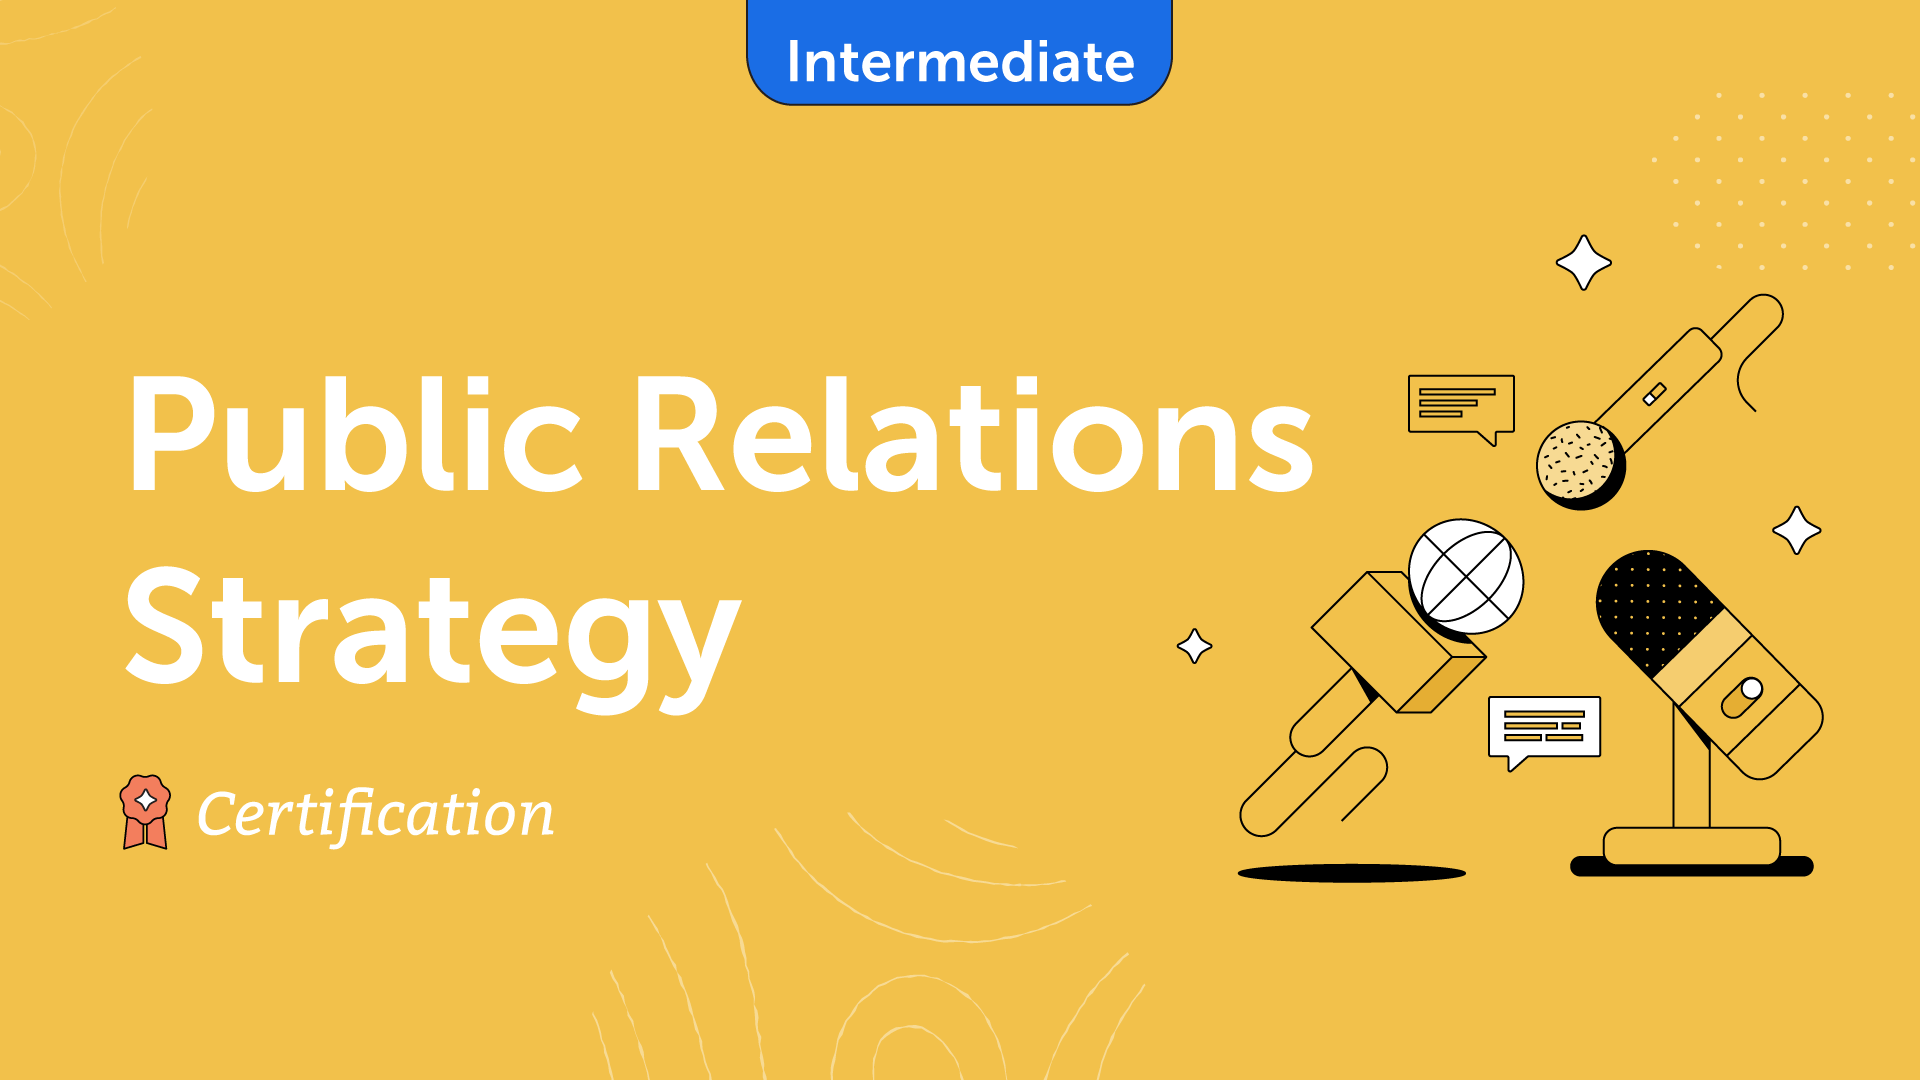 Public Relations Strategy Certification Course Card